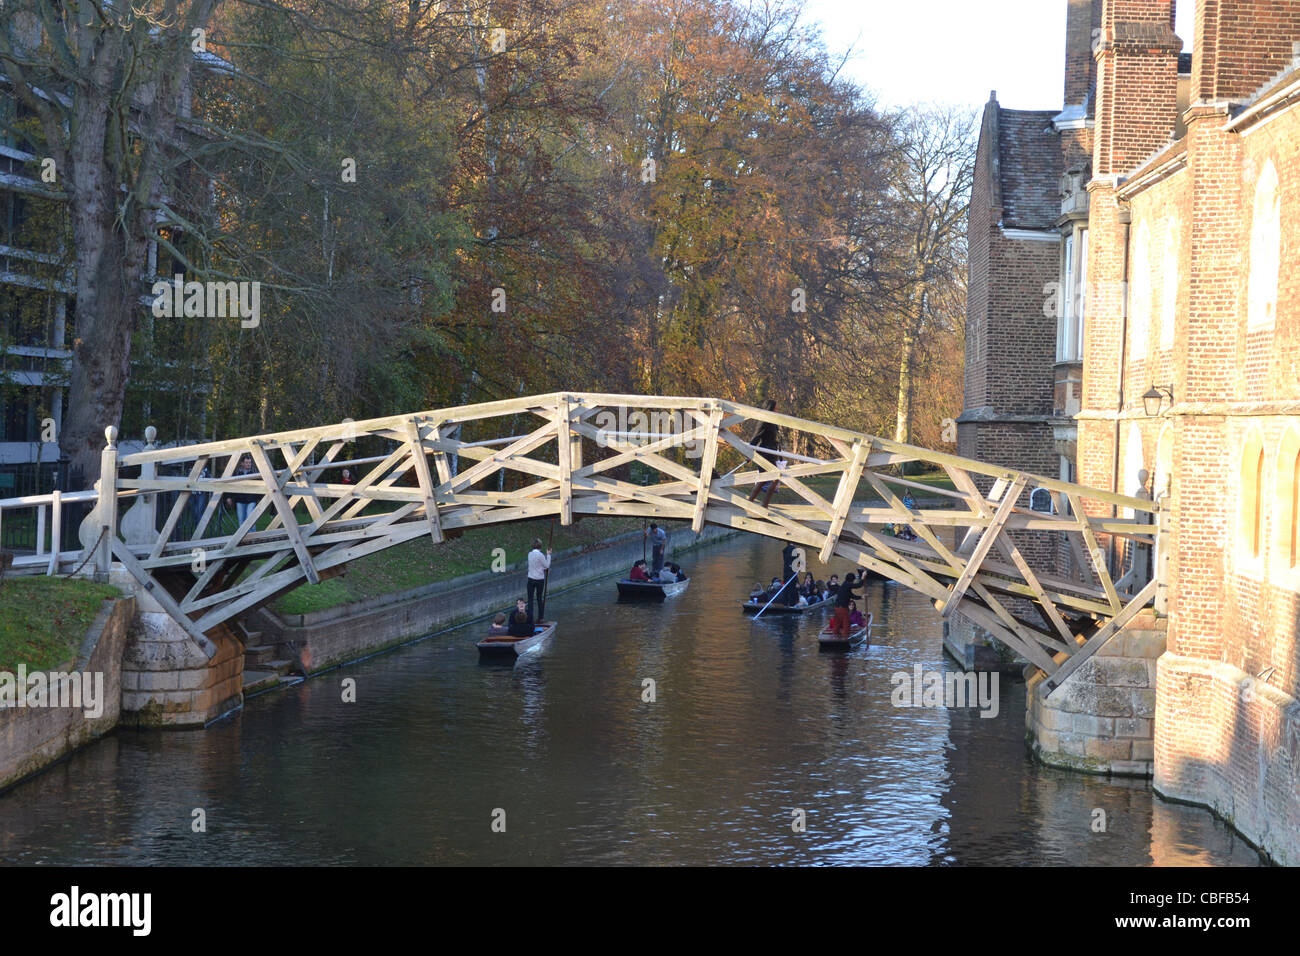 The Mathematical bridge which is said to be designed by Sir Isaac Newton while he was studying in Cambridge. - Stock Image